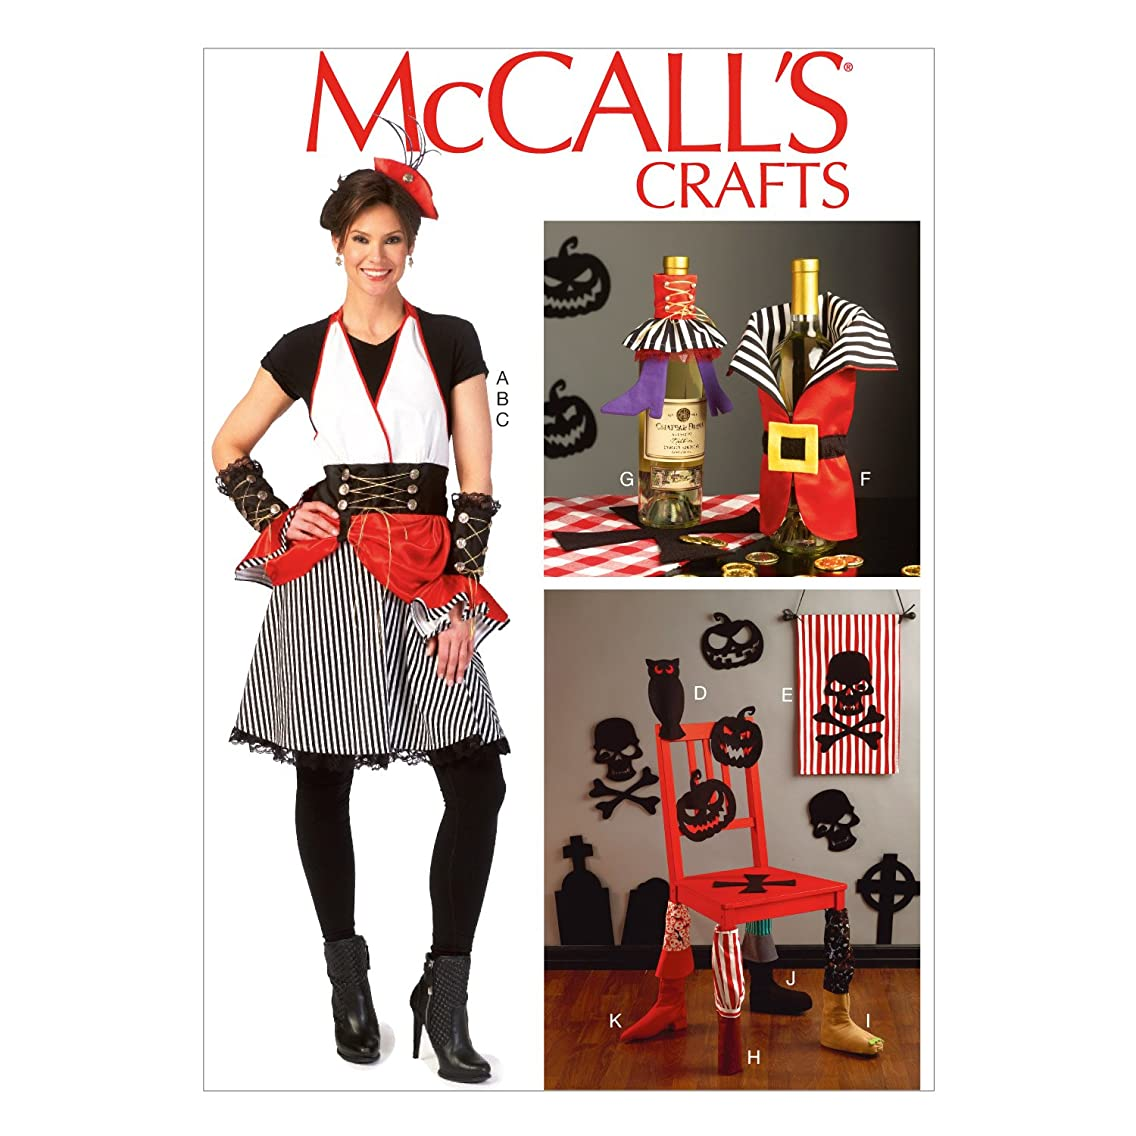 McCall Pattern Company M7005 Apron, Gauntlets, Hat, Silhouettes, Banner, Bottle Decorations, Chair Leg Decorations, Size MIS in One Envelope